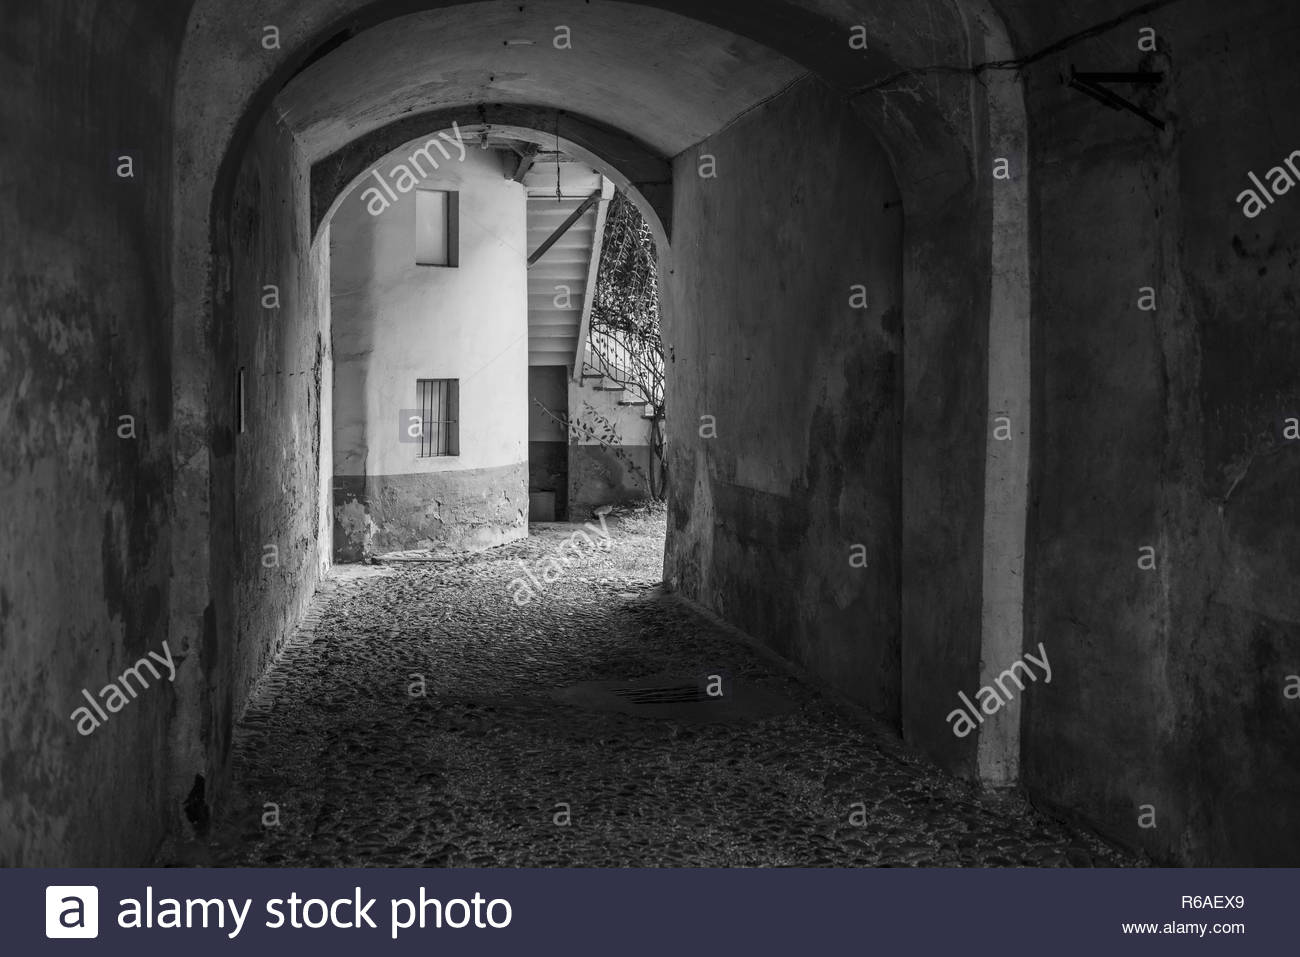 Driveway In A Yard In Piedmont - Stock Image